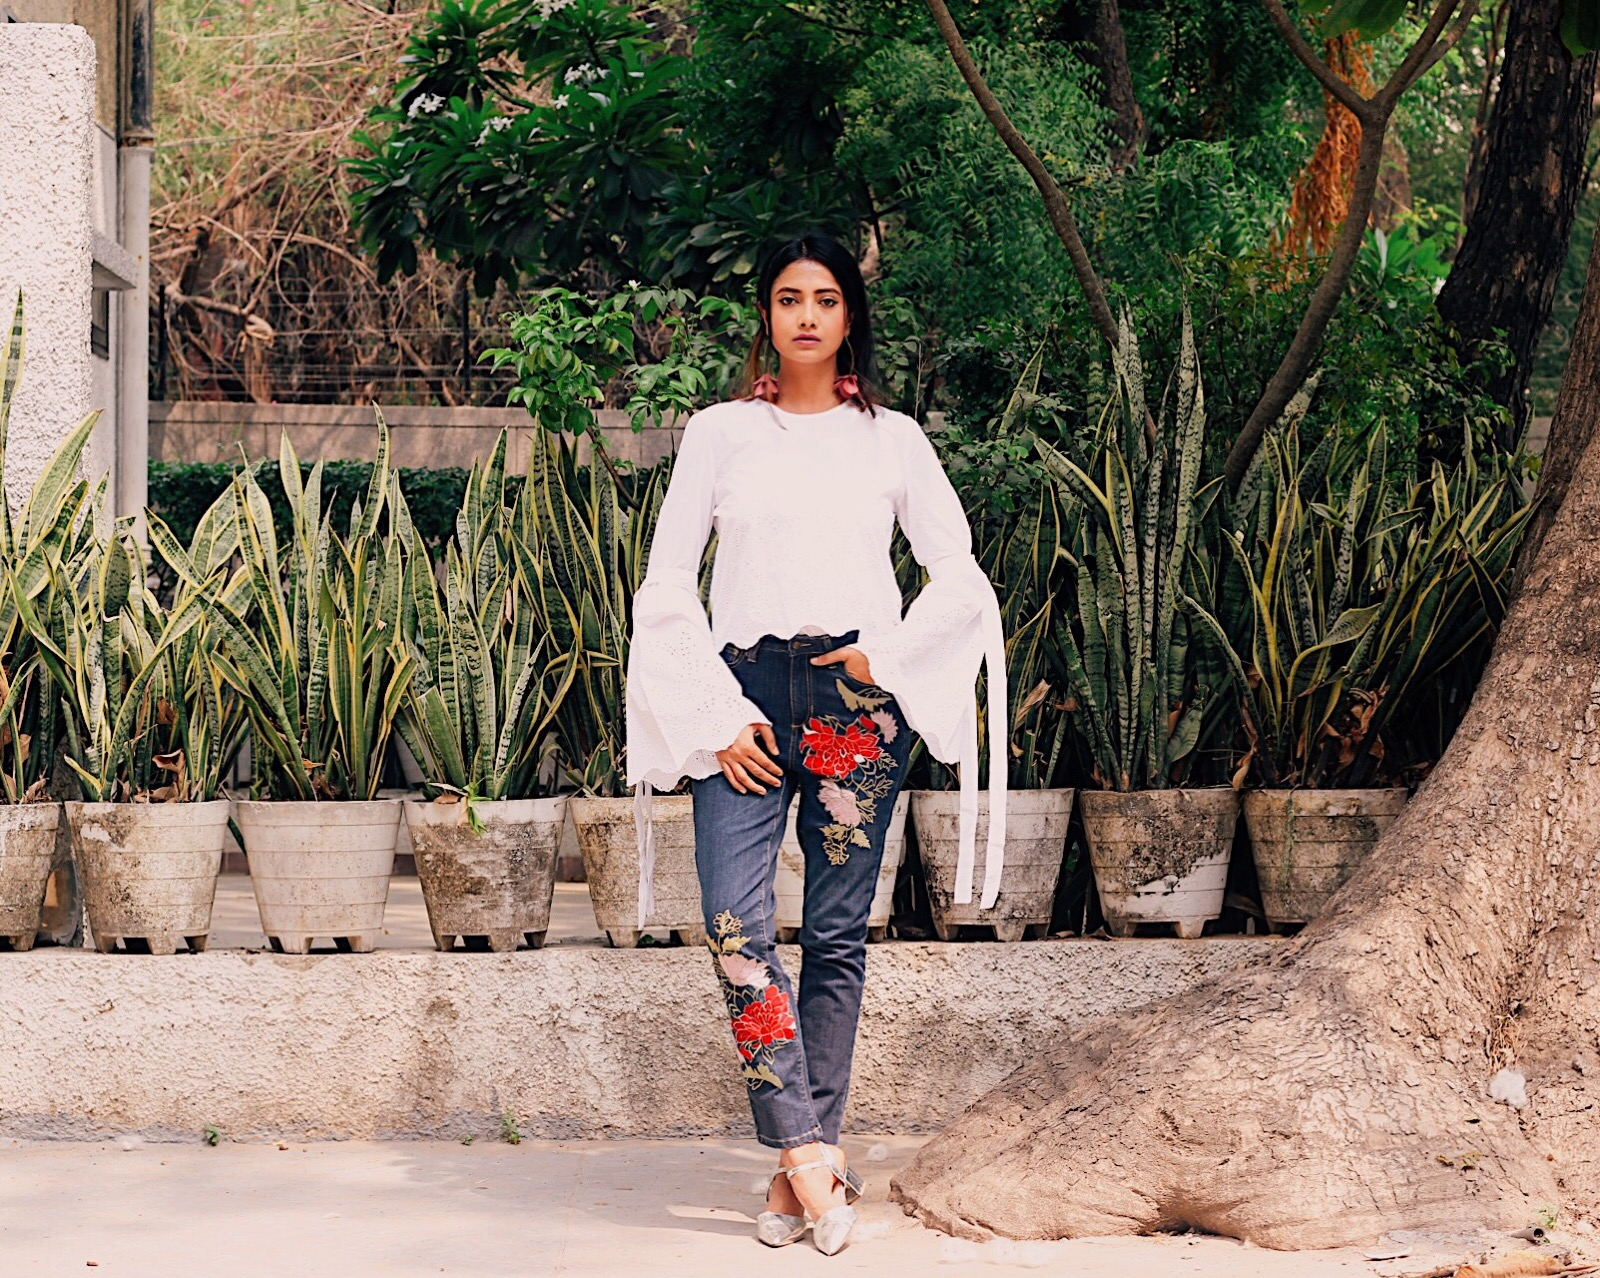 straight leg jeans, jeans trends ss17, jeans trend 2017, how to style jeans, wear jeans, eshakti, eshakti review, eshakti india, custom made jeans india, tailor made jeans india, get custom made jean online, customizing jeans, effortless chic, casual, embroidered trend, embroidered jeans, street style, statement white top, updated white top, bell sleeve top, trends ss17, street style india, india fashion, top style india, indian fashion blogger, indian style blogger, top indian blog, uk blog, what to wear in ss 17, what to wear, how to style, style tip, parisian style, london street style